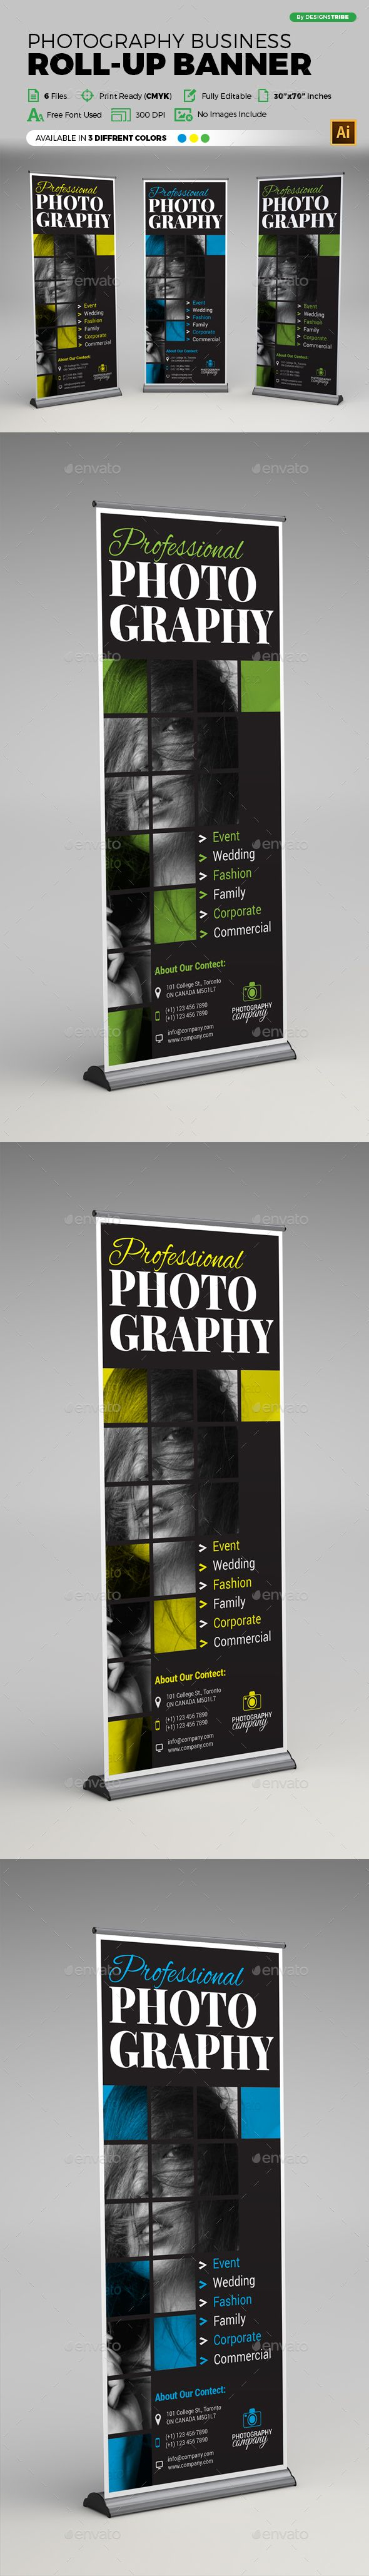 Photography Roll Up Banner by arsalanhanif Corporate Business Roll-up Banner Tem...